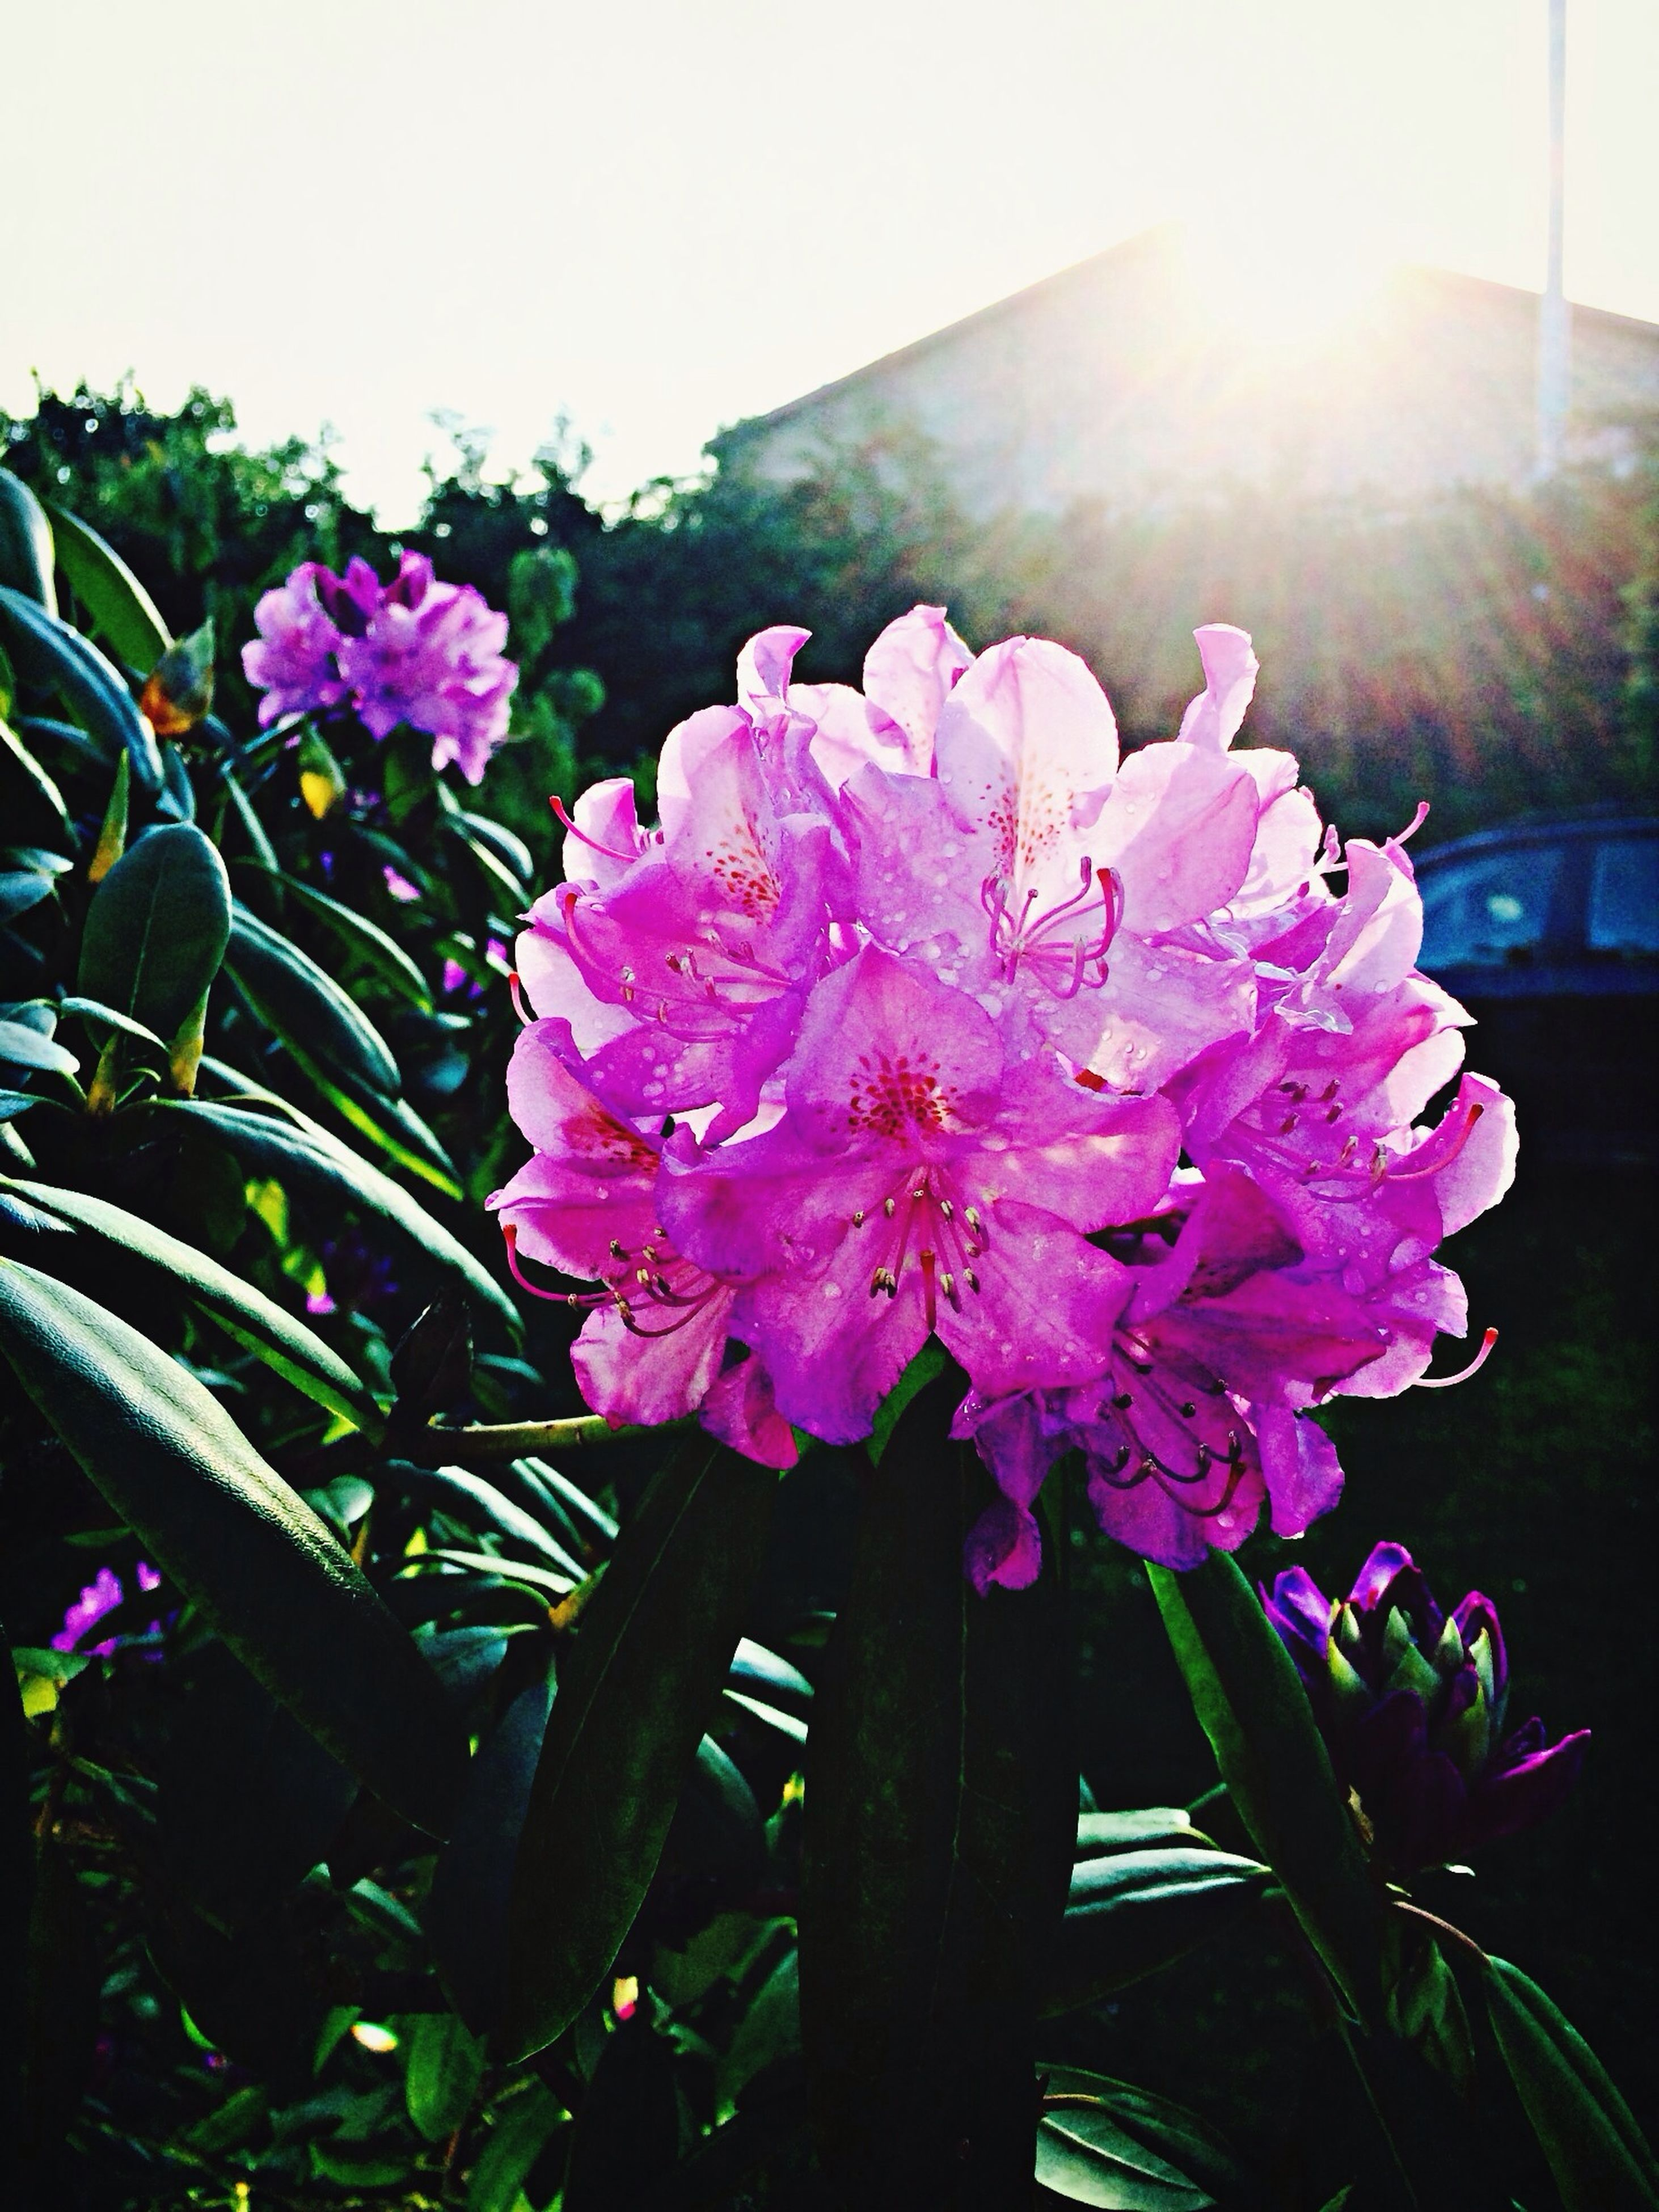 flower, freshness, fragility, petal, growth, flower head, beauty in nature, pink color, blooming, plant, nature, sunlight, close-up, sunbeam, in bloom, leaf, sun, day, outdoors, focus on foreground